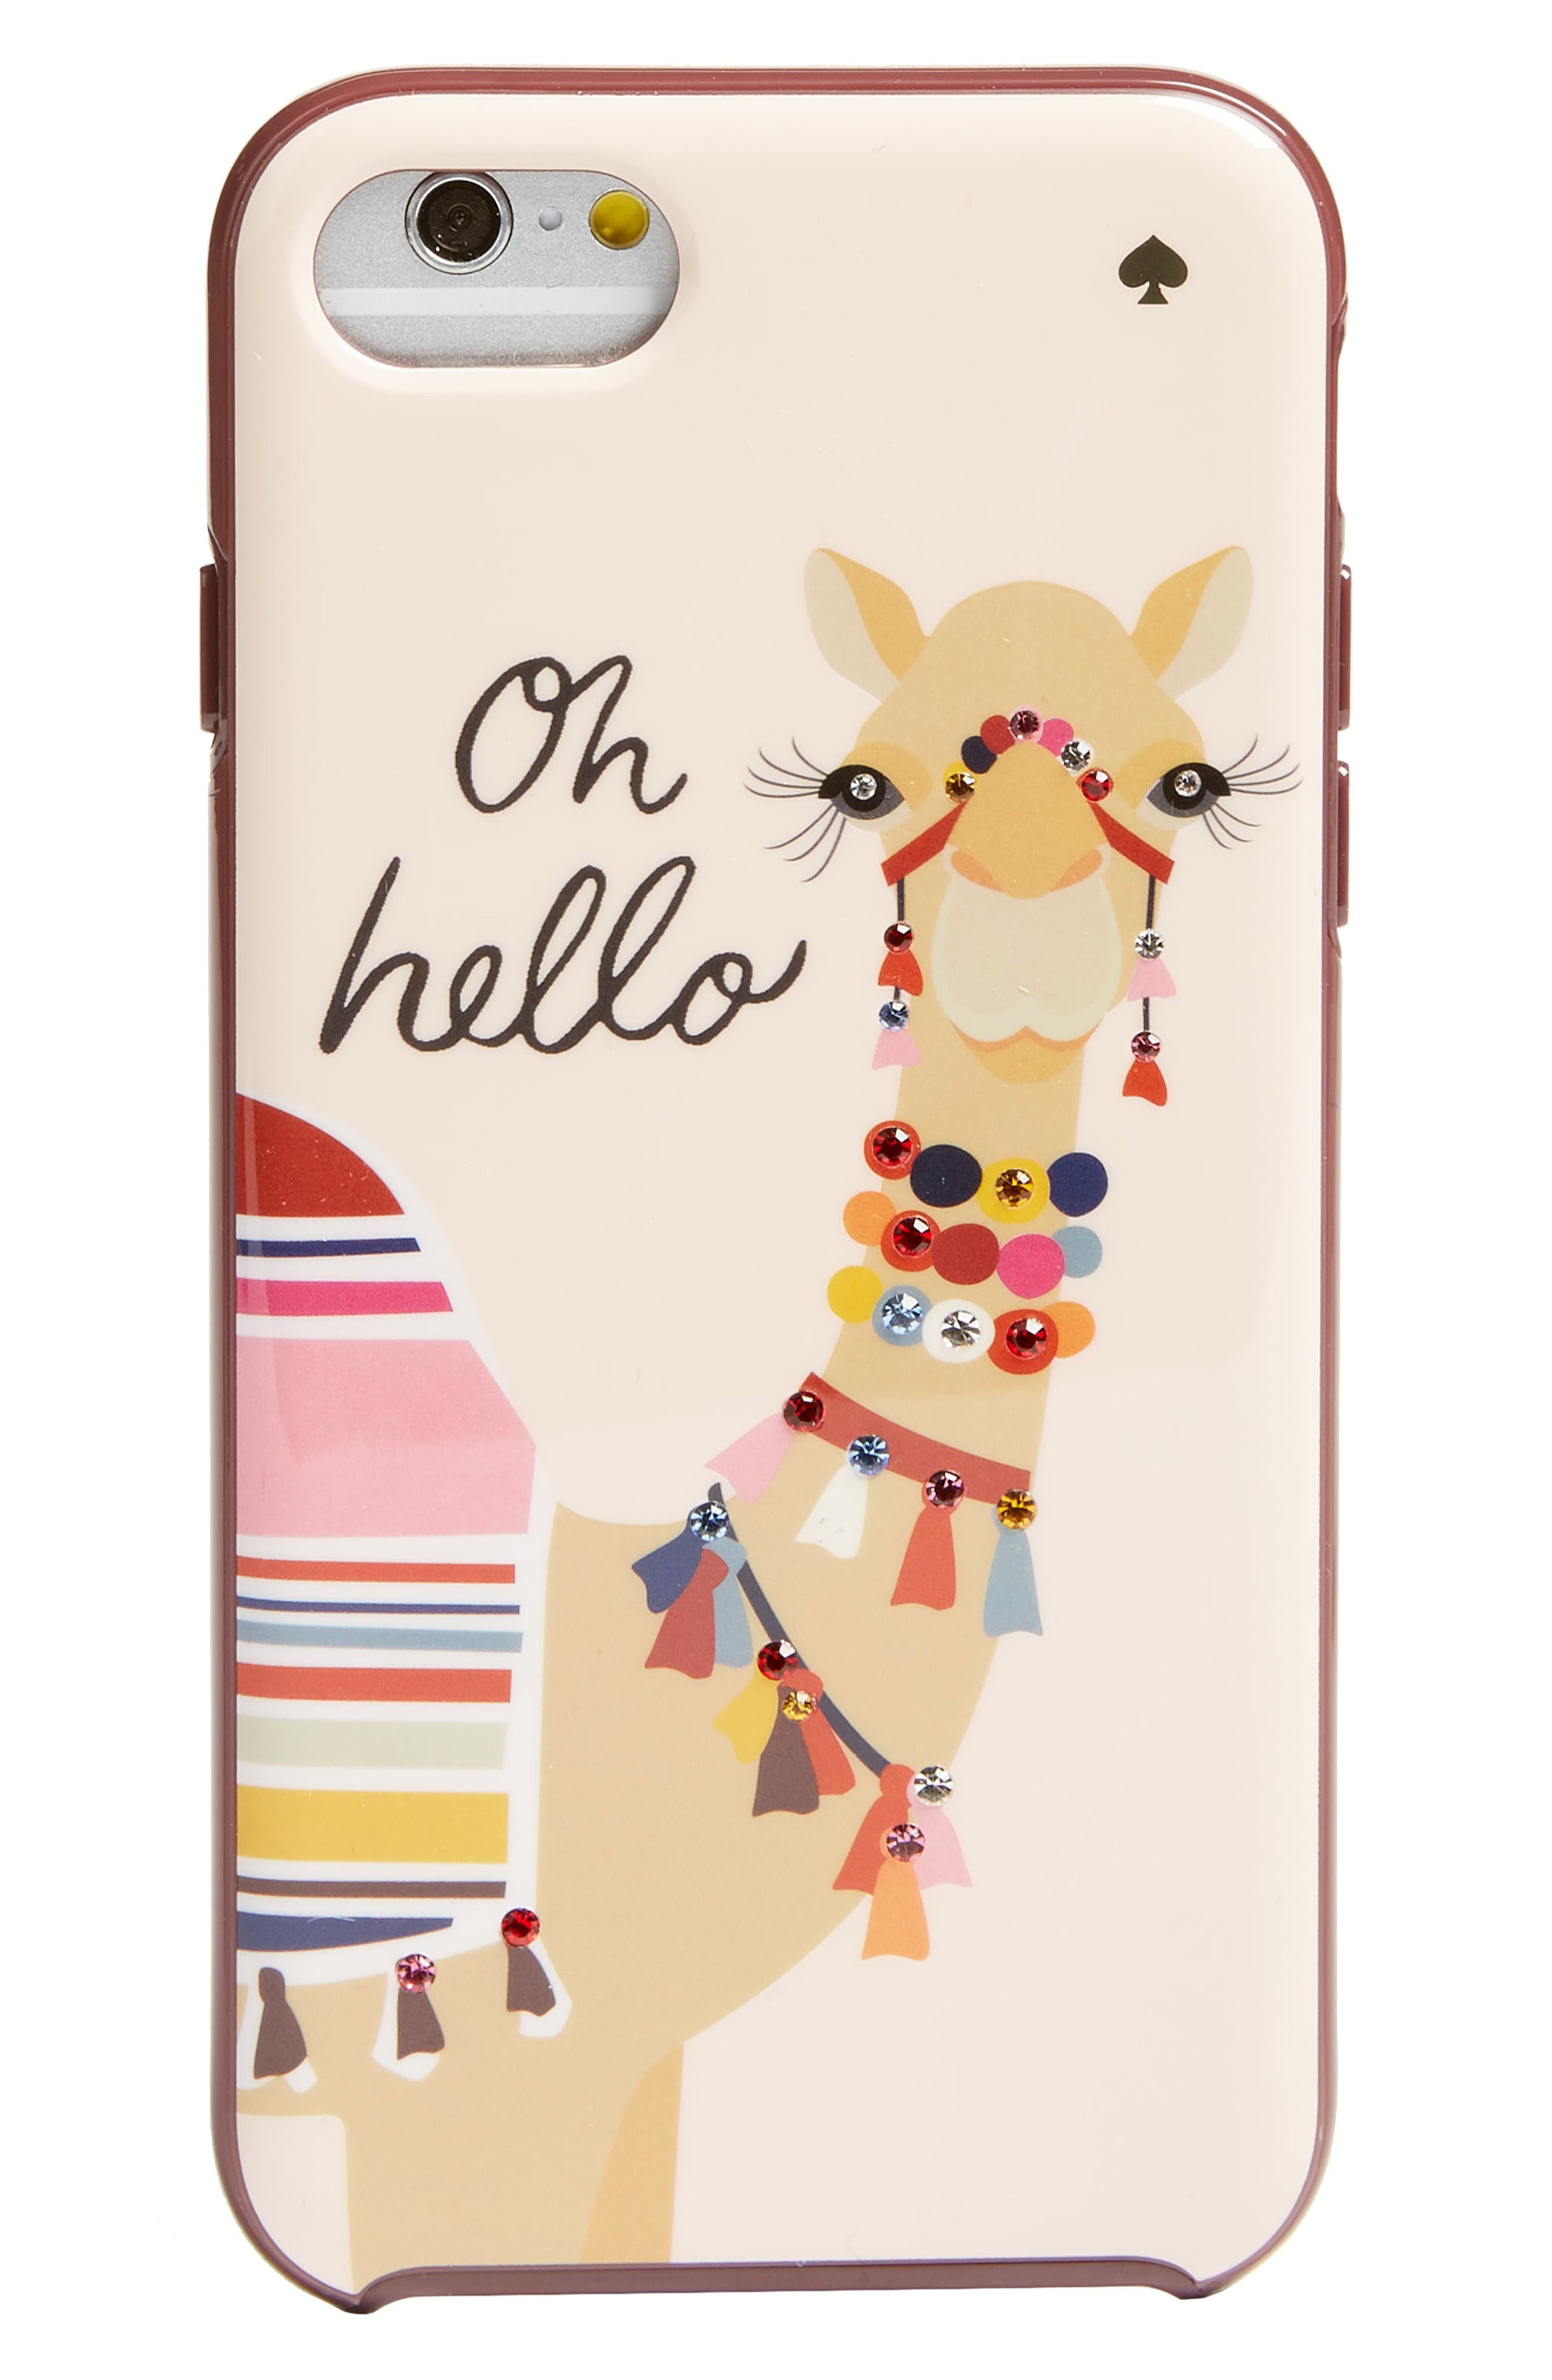 Alternate Image 1 Selected - kate spade new york camel iPhone 7 & 7 Plus case (Nordstrom Exclusive)